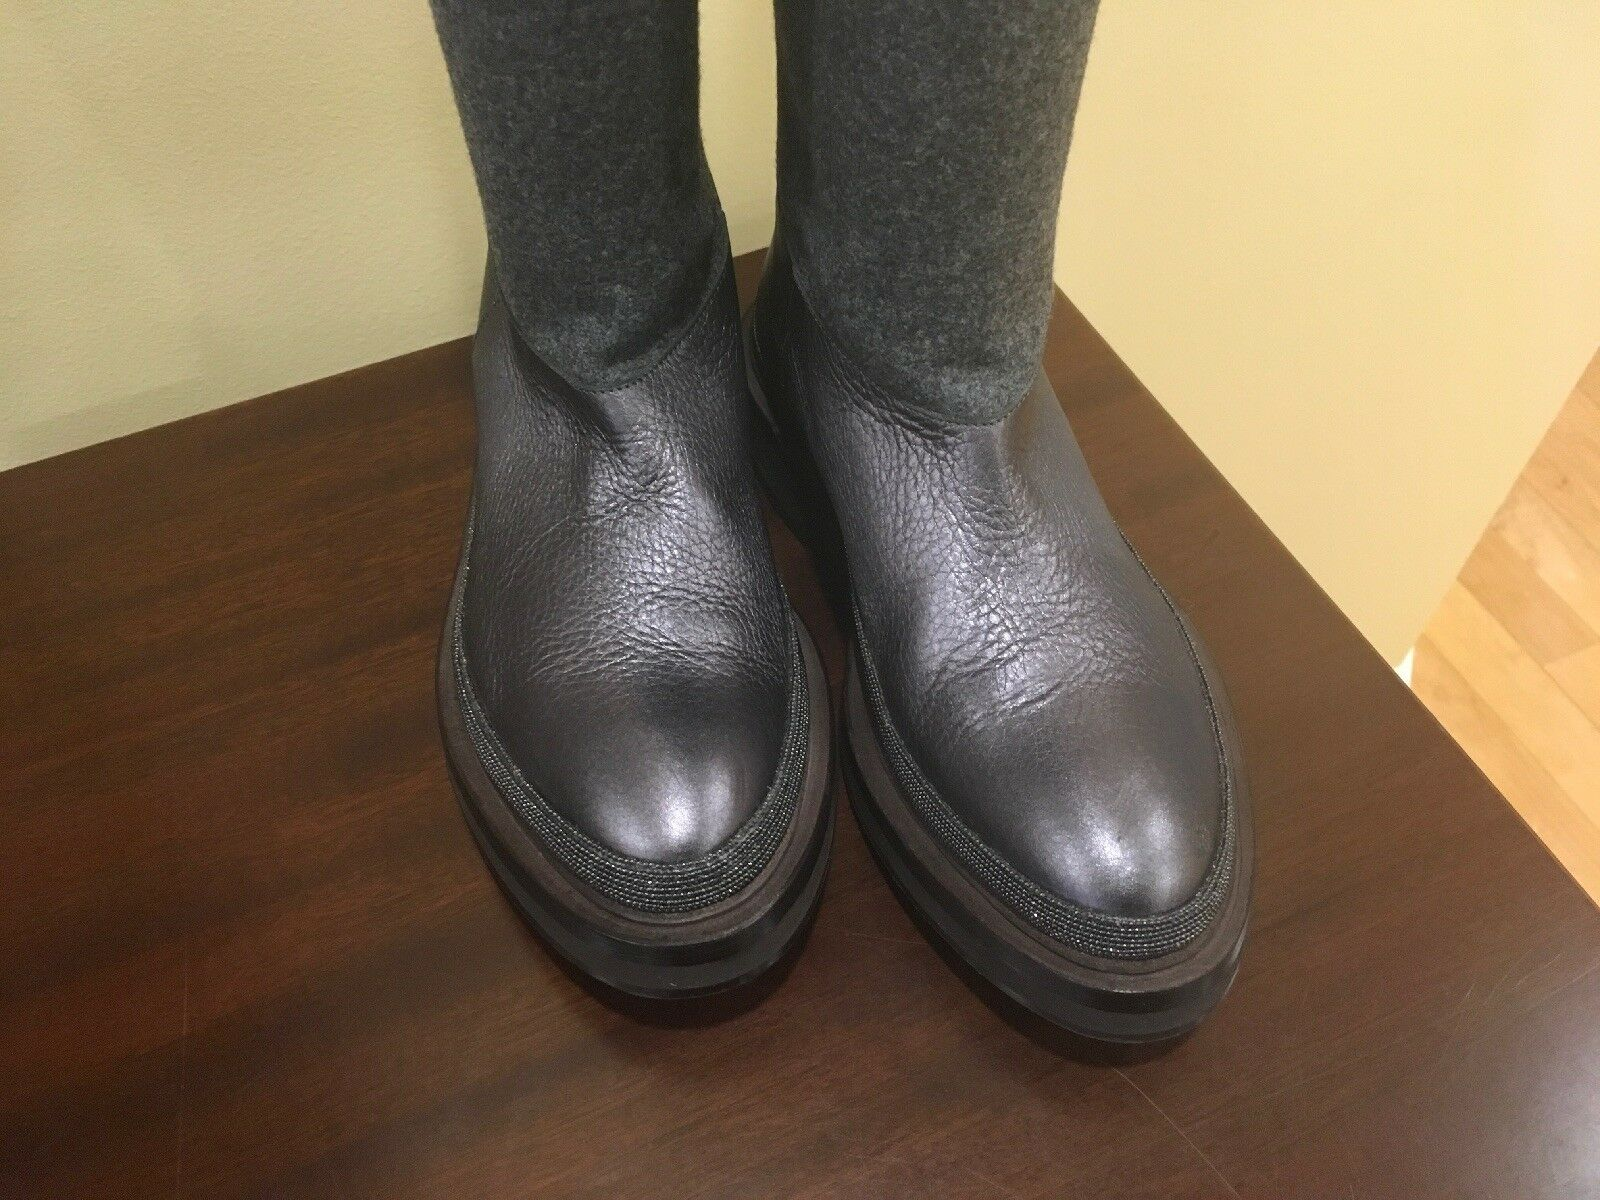 NWOB  2295 Brunello cucinelli Leather Leather Leather Wool Sparkly Monili Knee-high Riding bottes fae269